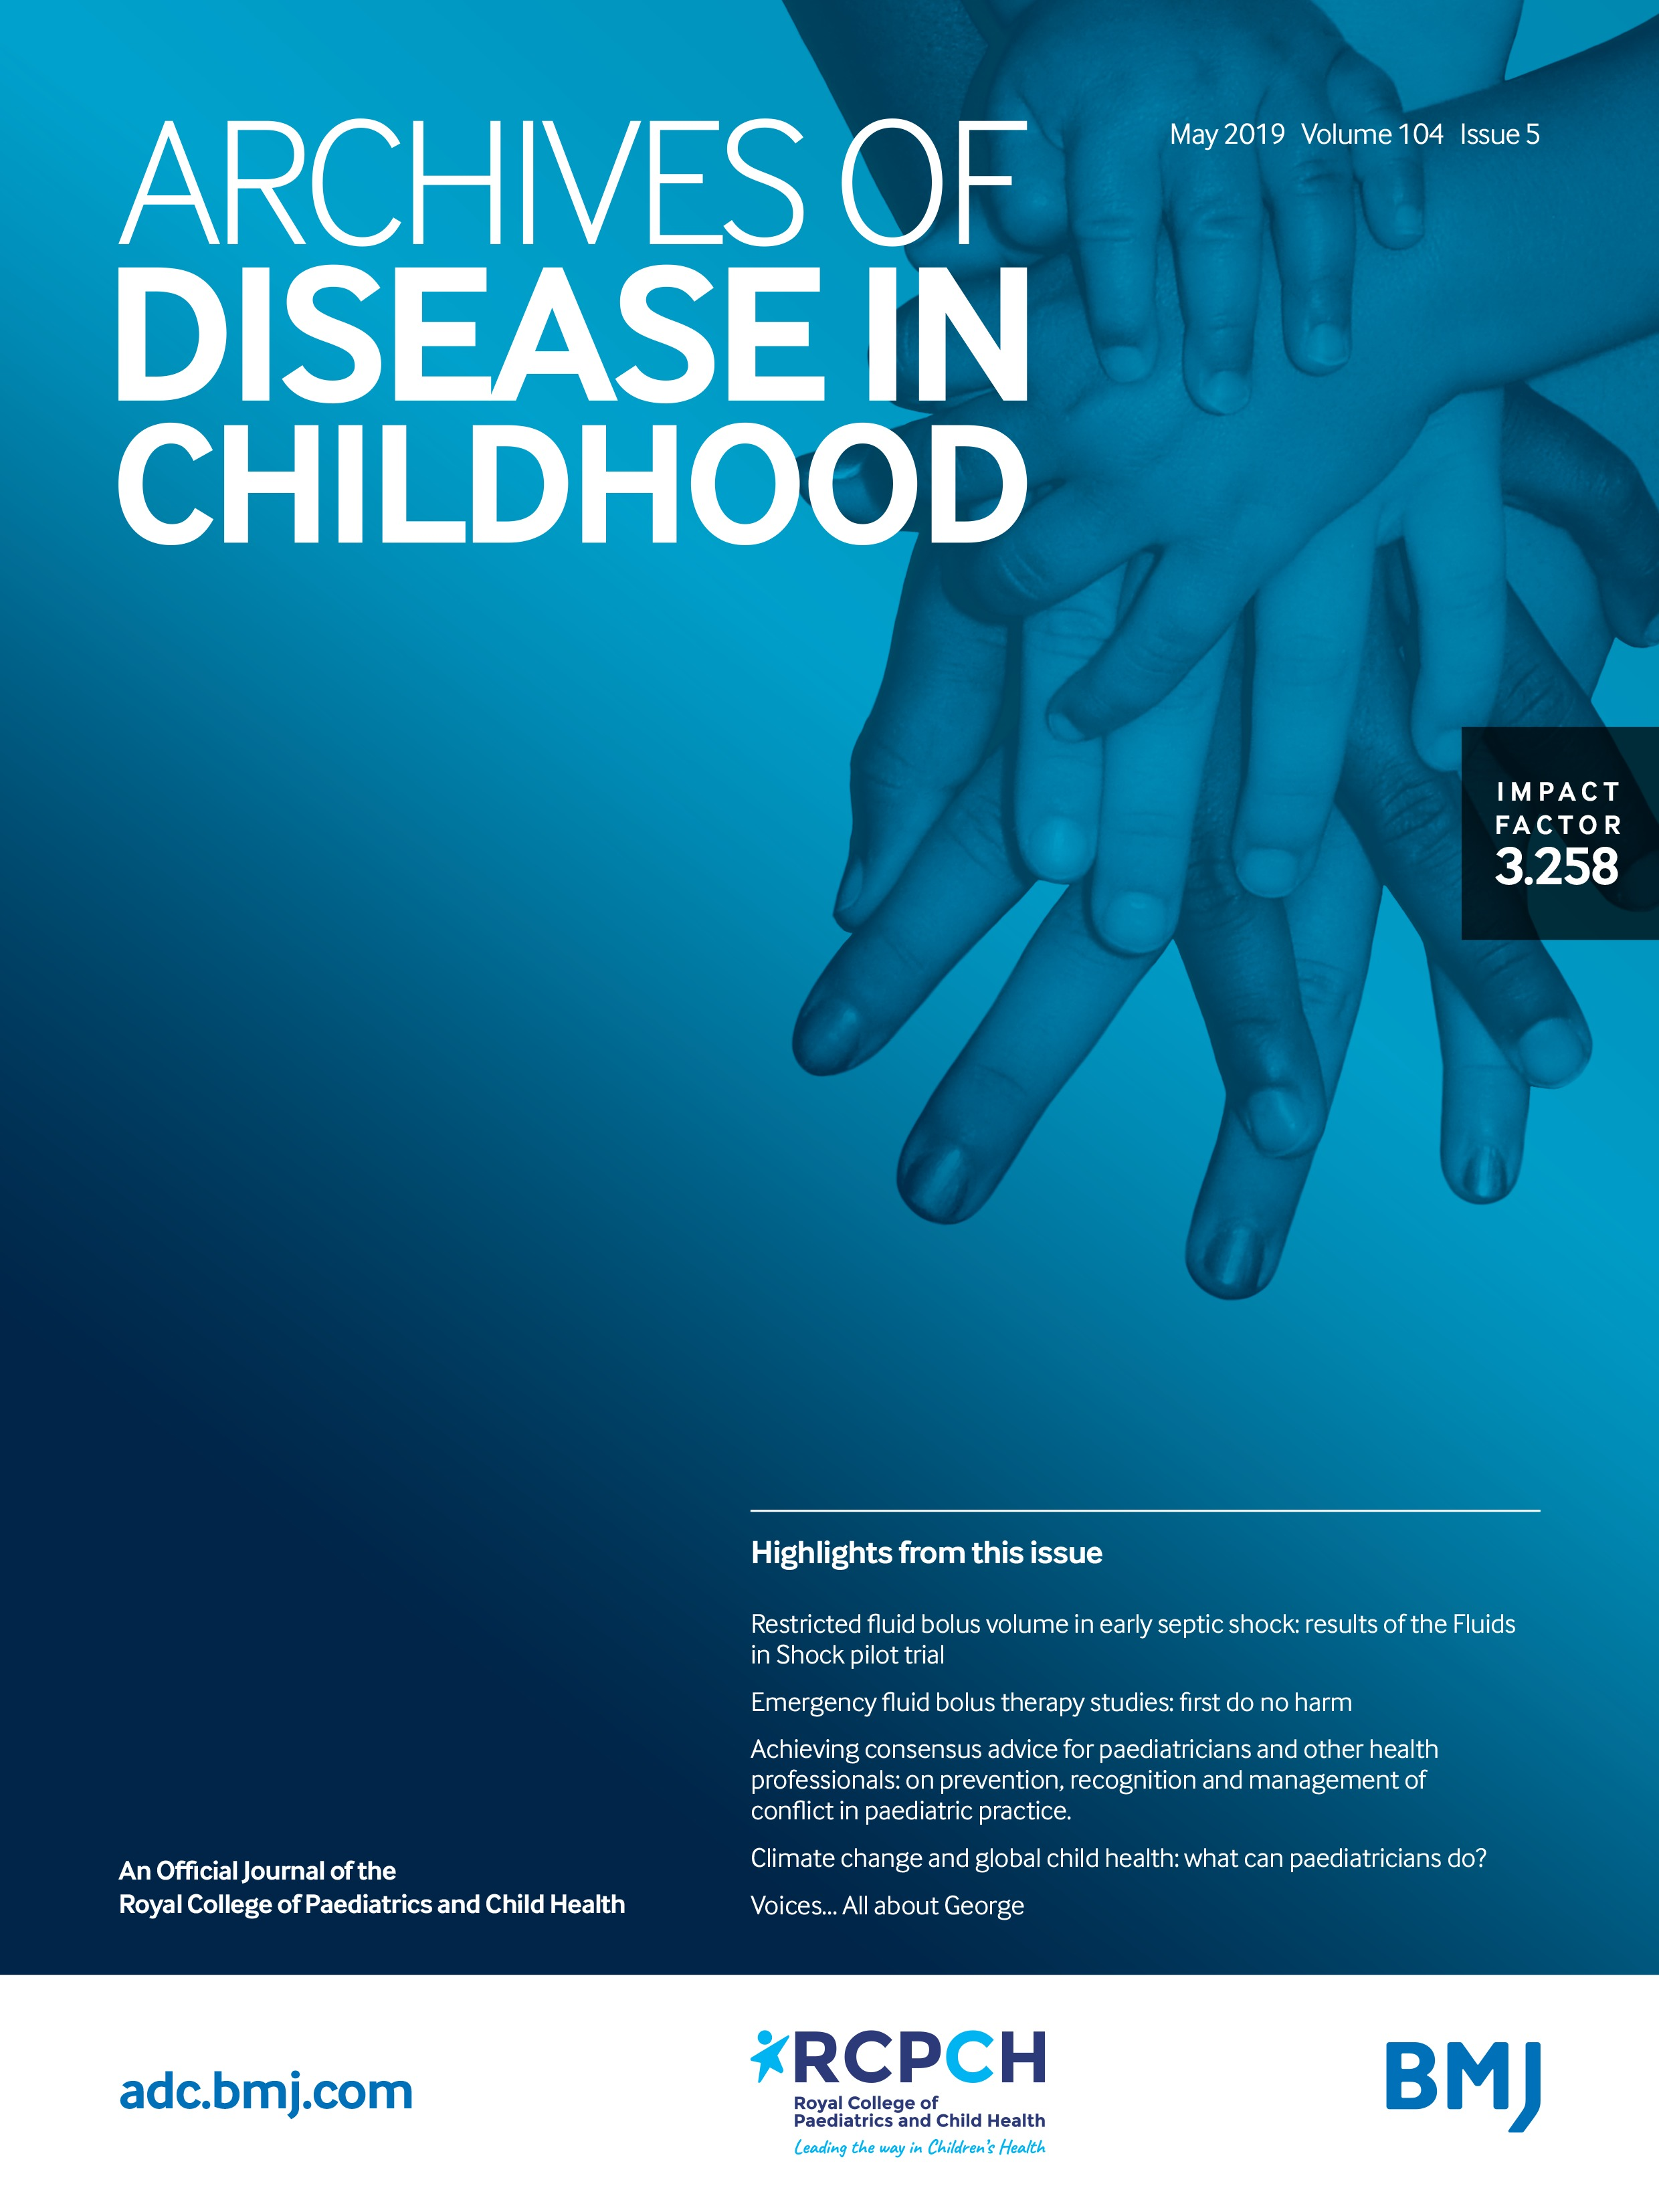 Musculoskeletal anomalies in children with Down syndrome: an